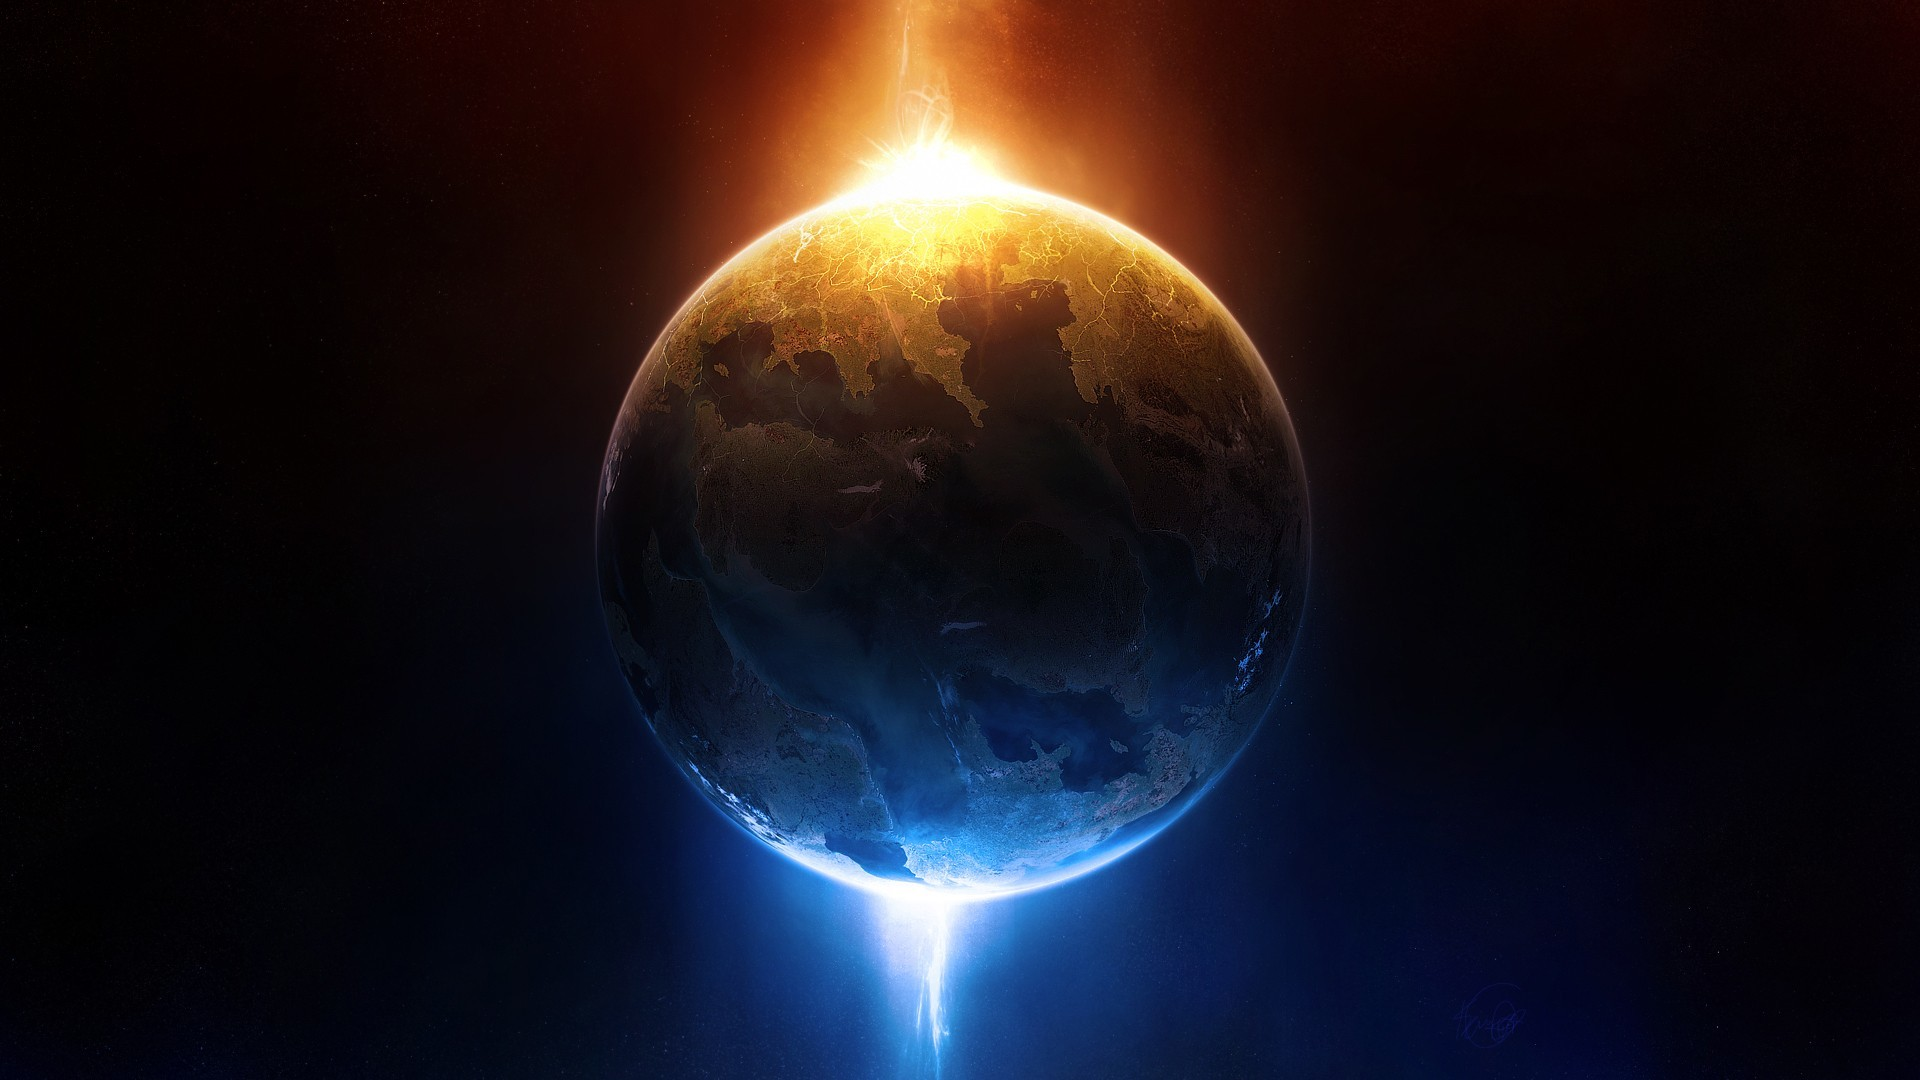 Cool Wallpapers Earth Space HD Wallpaper of Galaxy – hdwallpaper2013 .